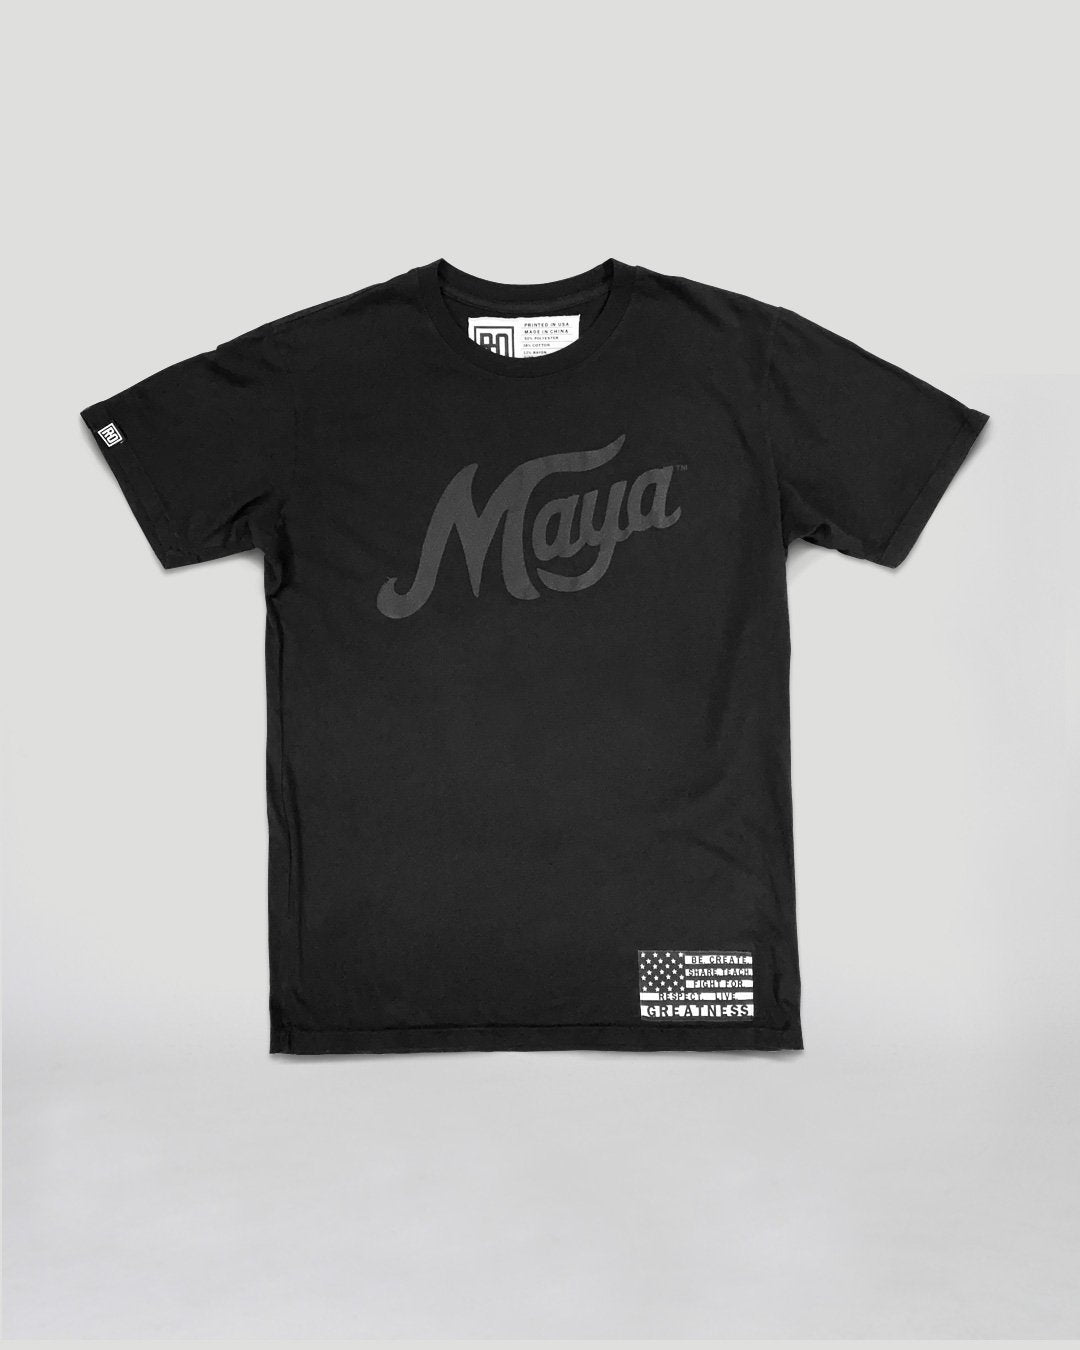 BHT - Maya Tee - Roots of Inc dba Roots of Fight